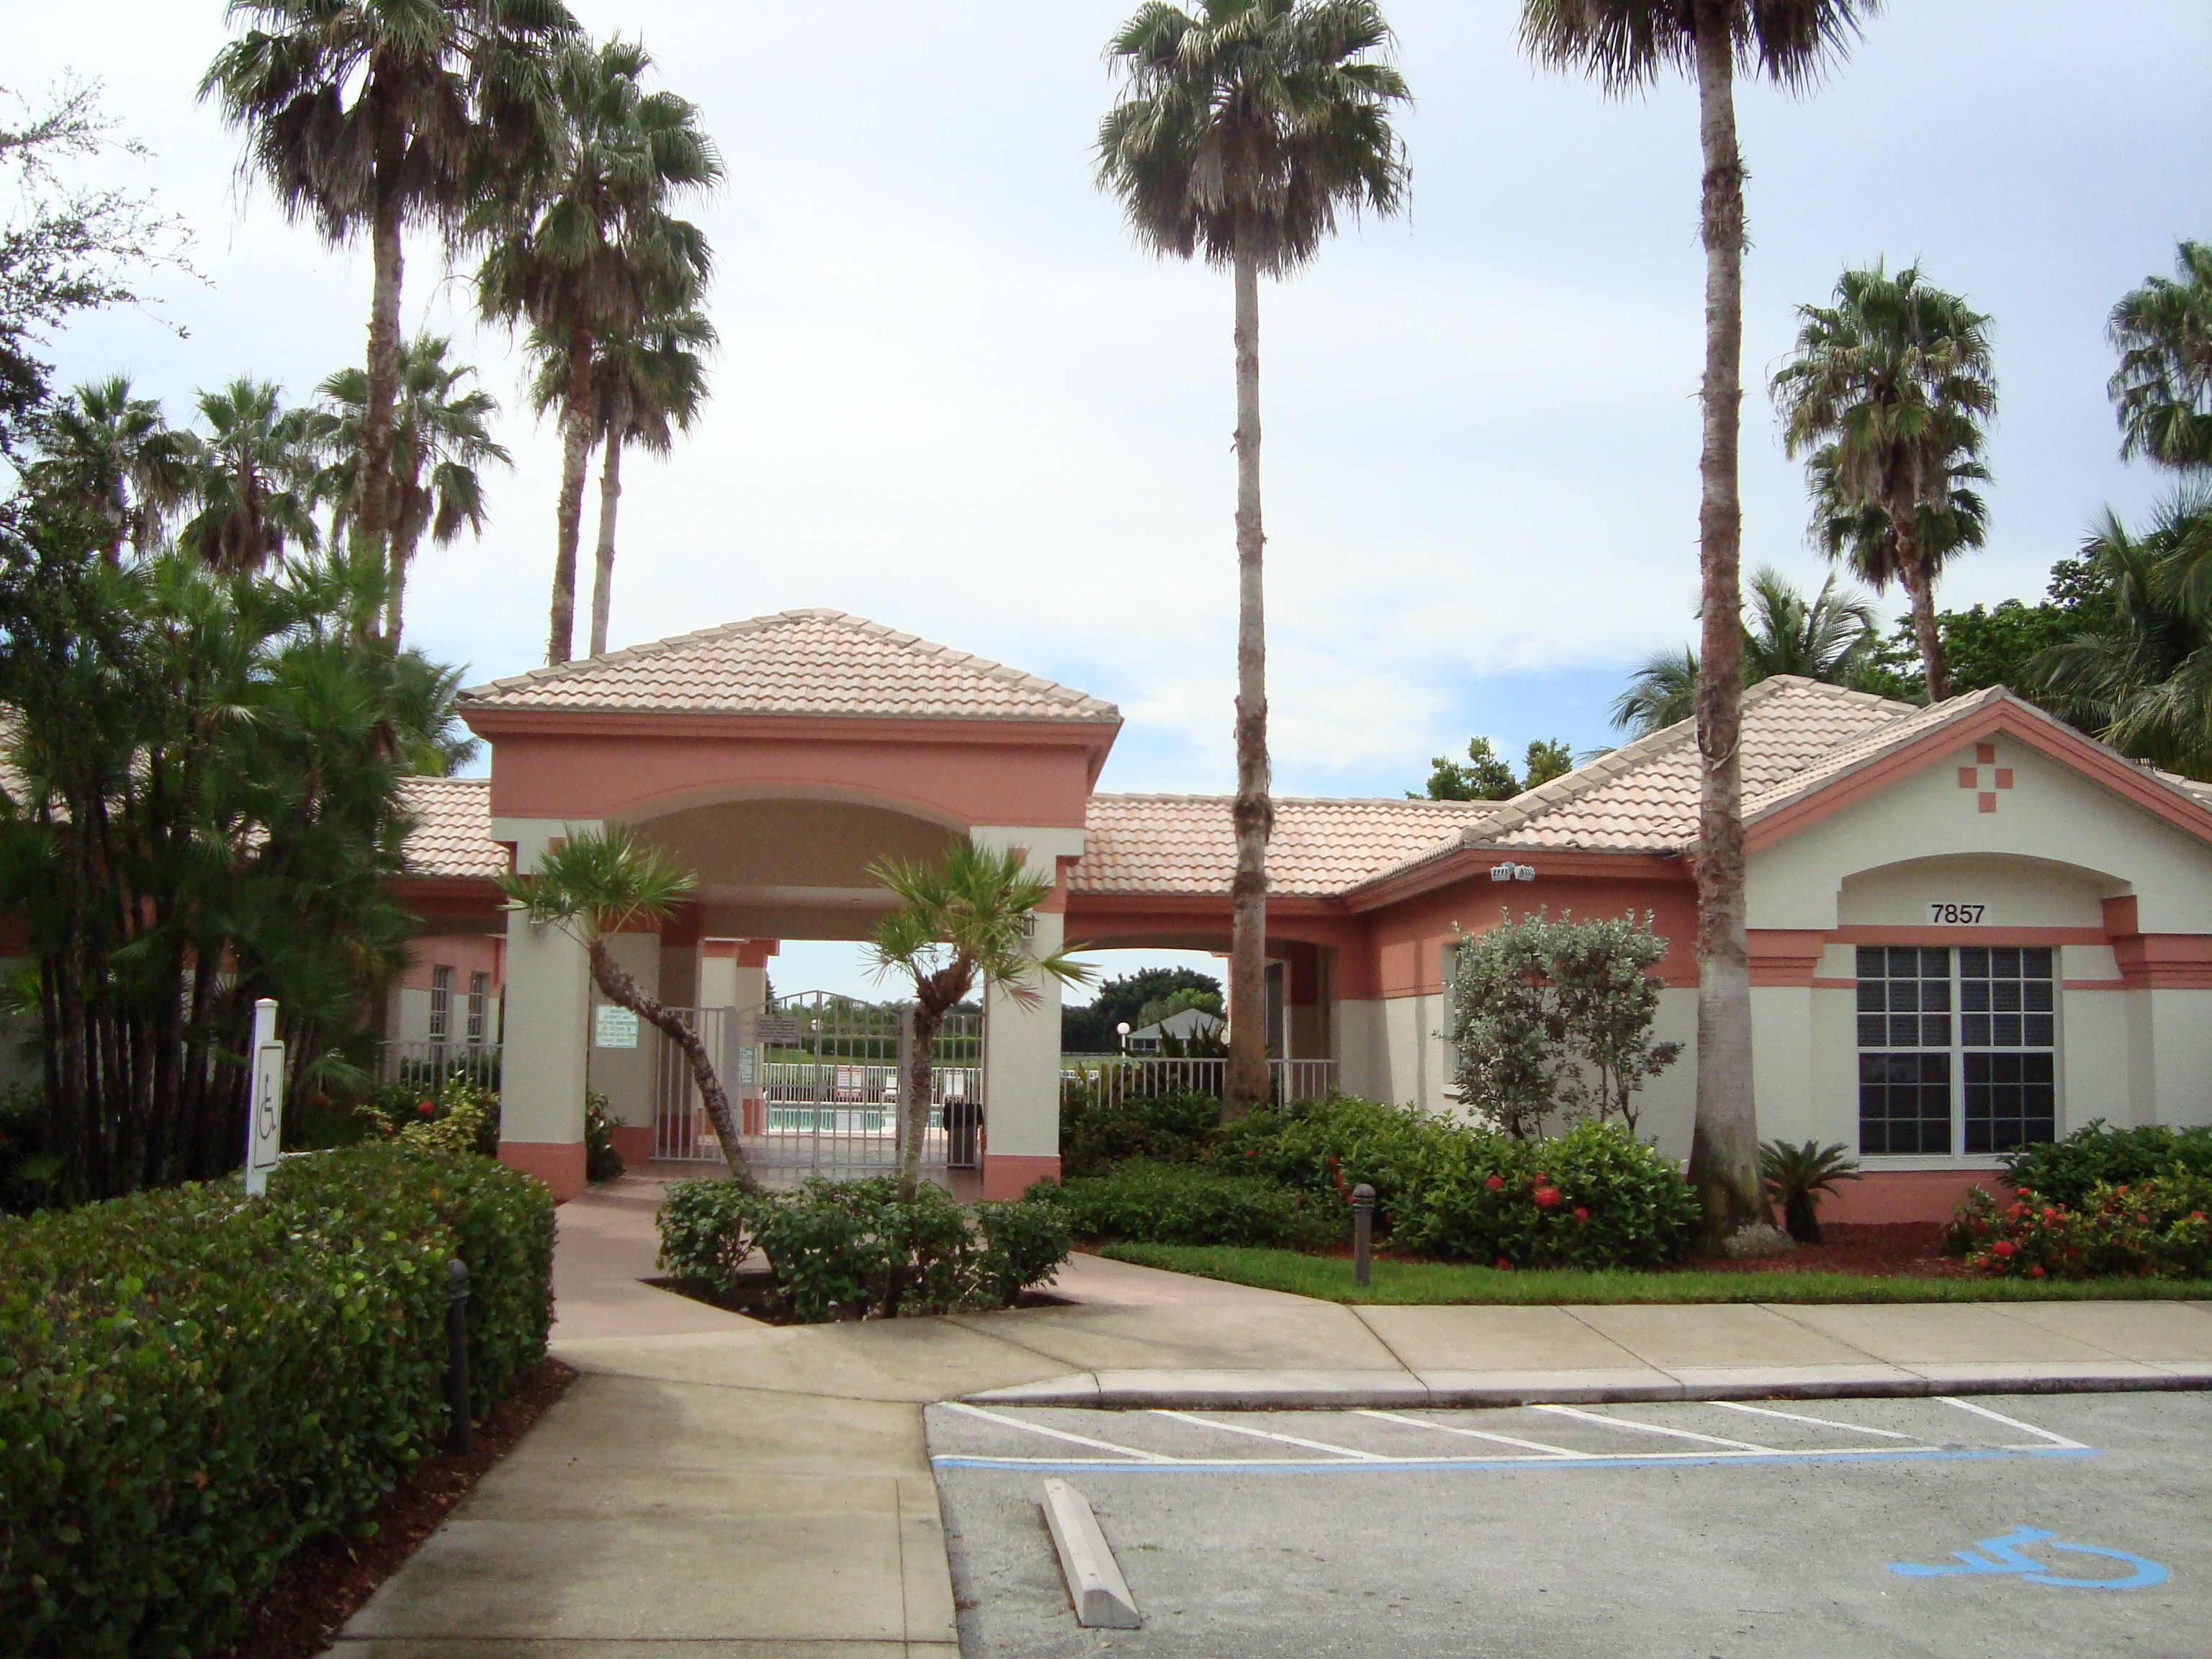 Clubhouse at Orchards in Naples, Florida.